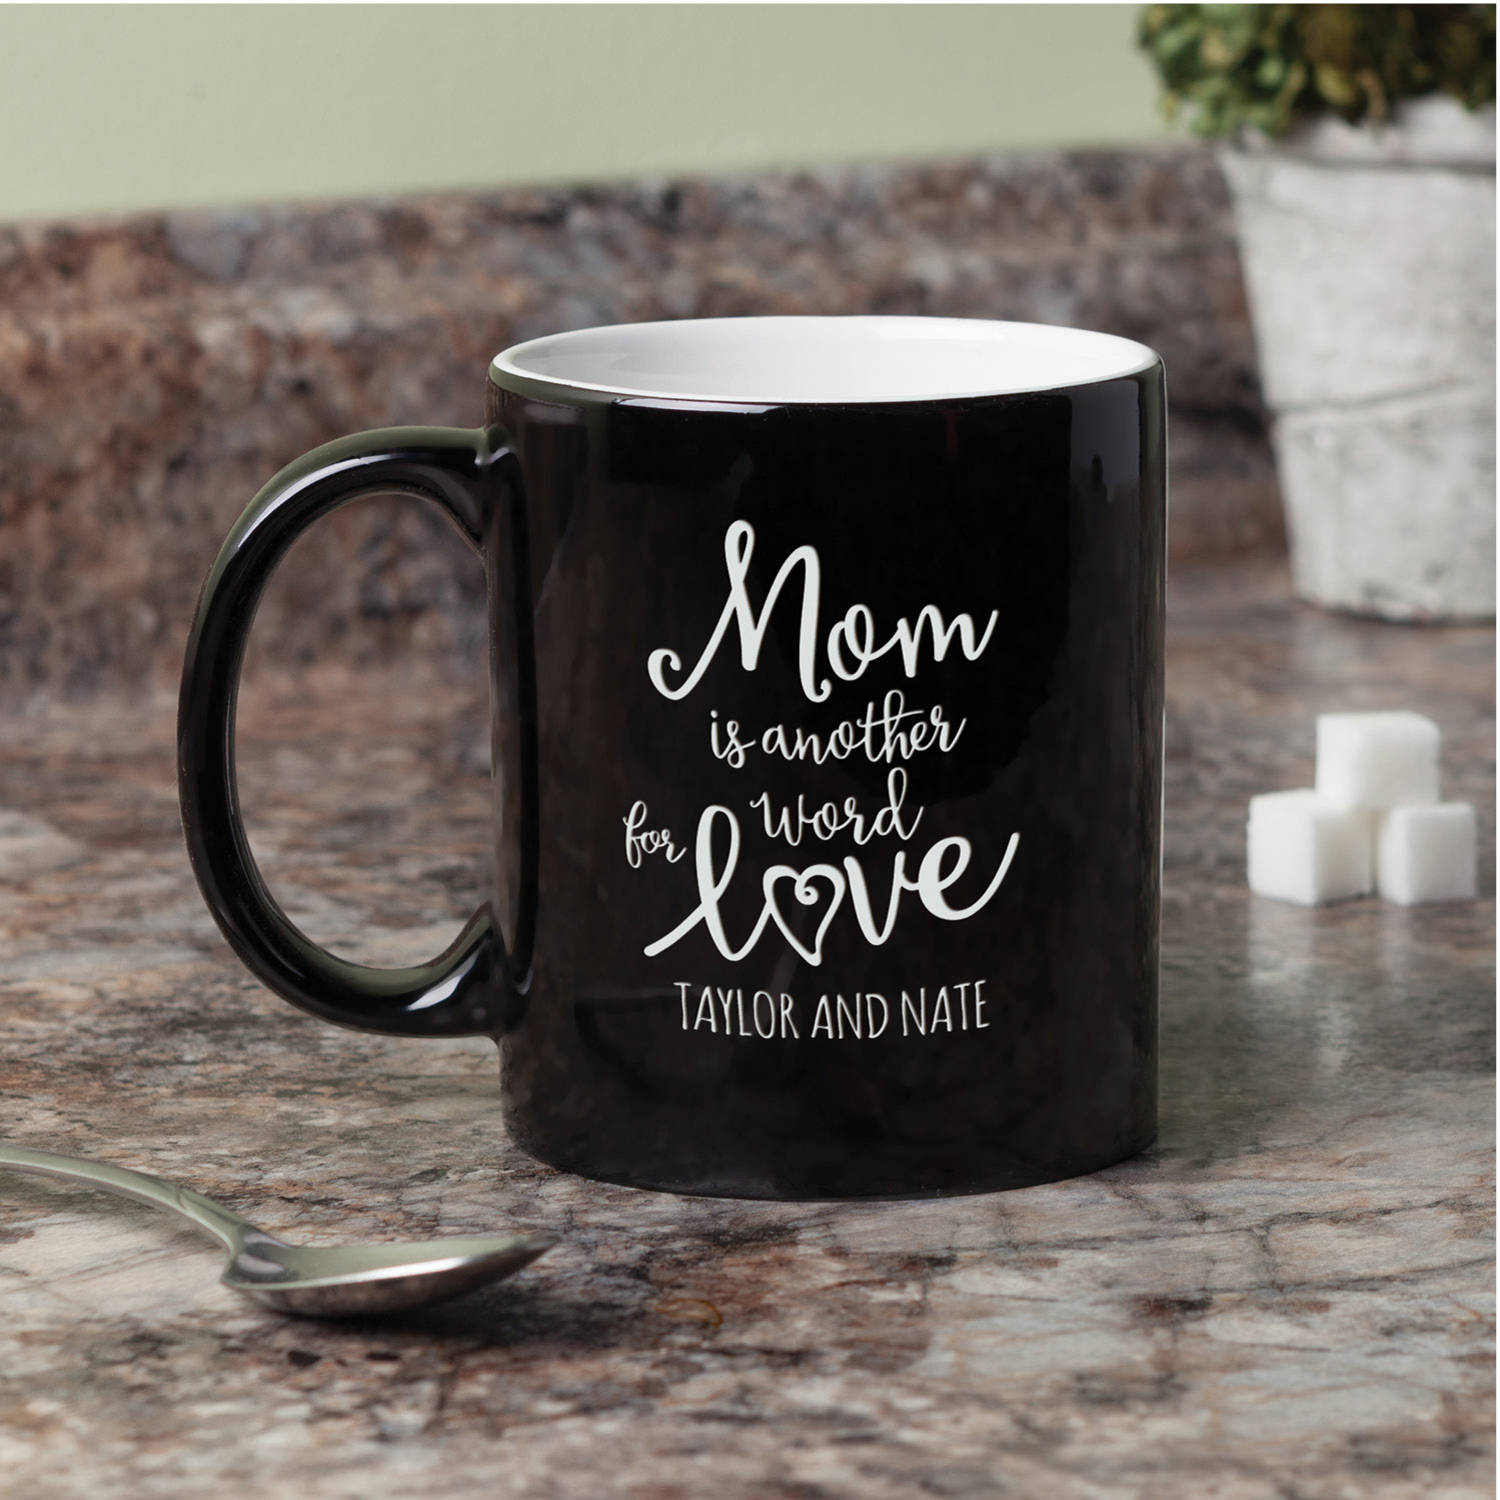 Personalized Mom Is Another Word For Love Black and White 11 oz Coffee Mug